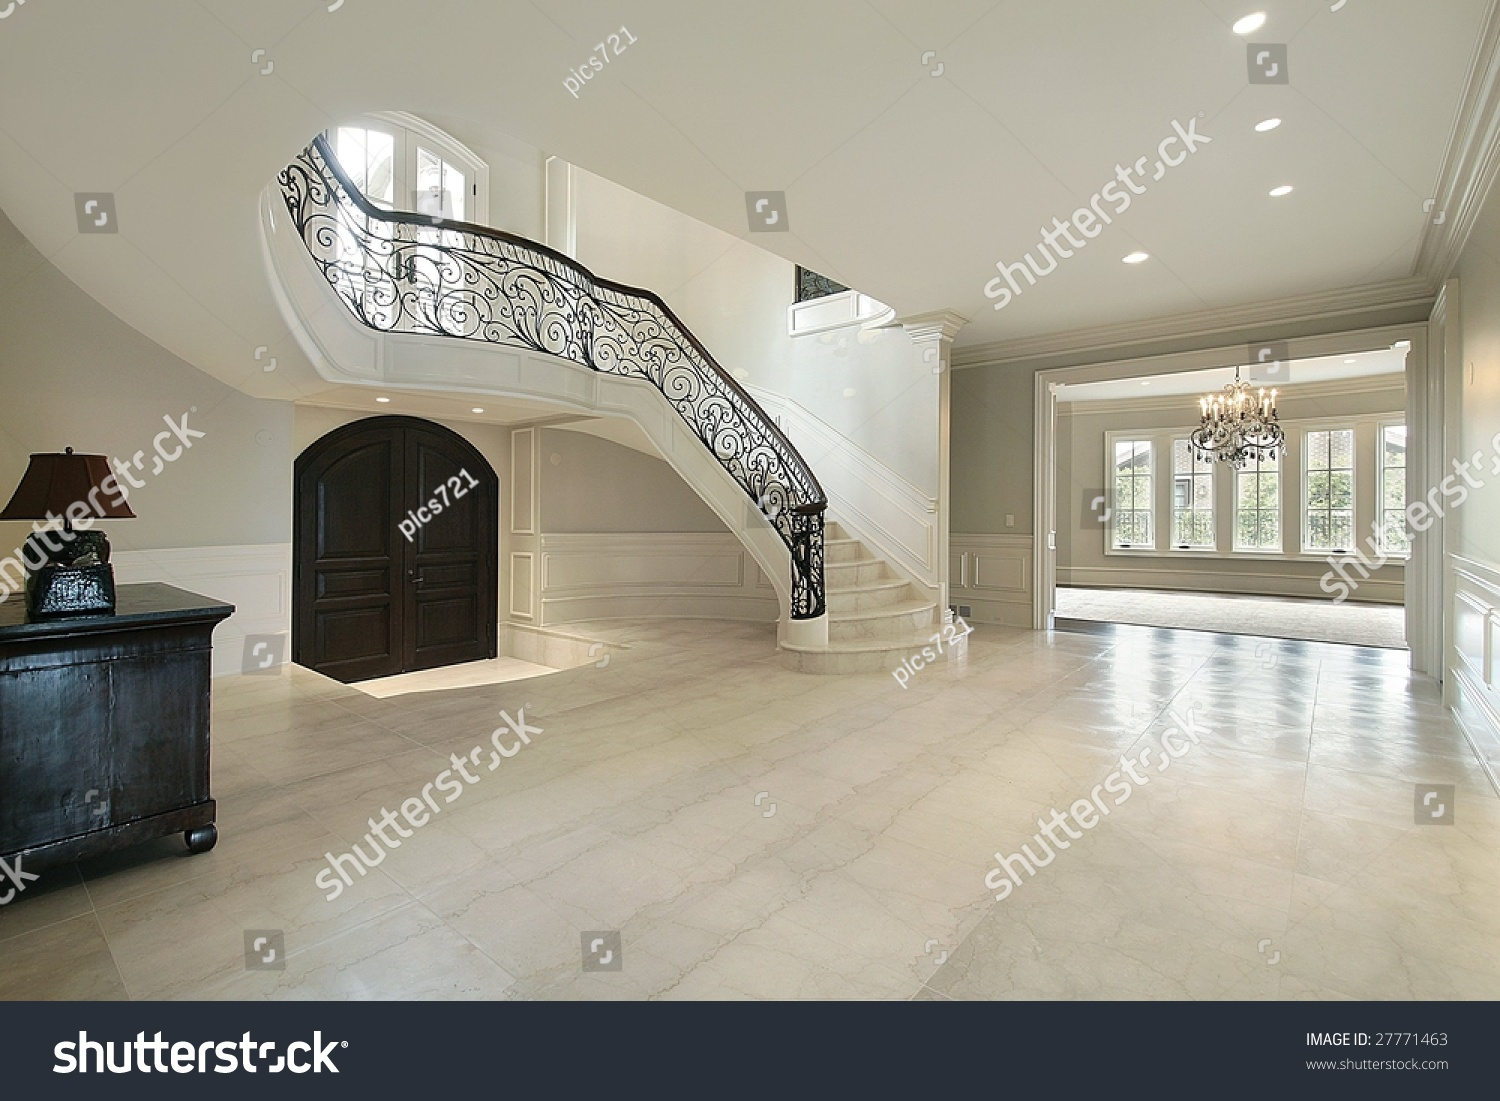 Foyer and stairs of luxury home stock photo 27771463 : shutterstock